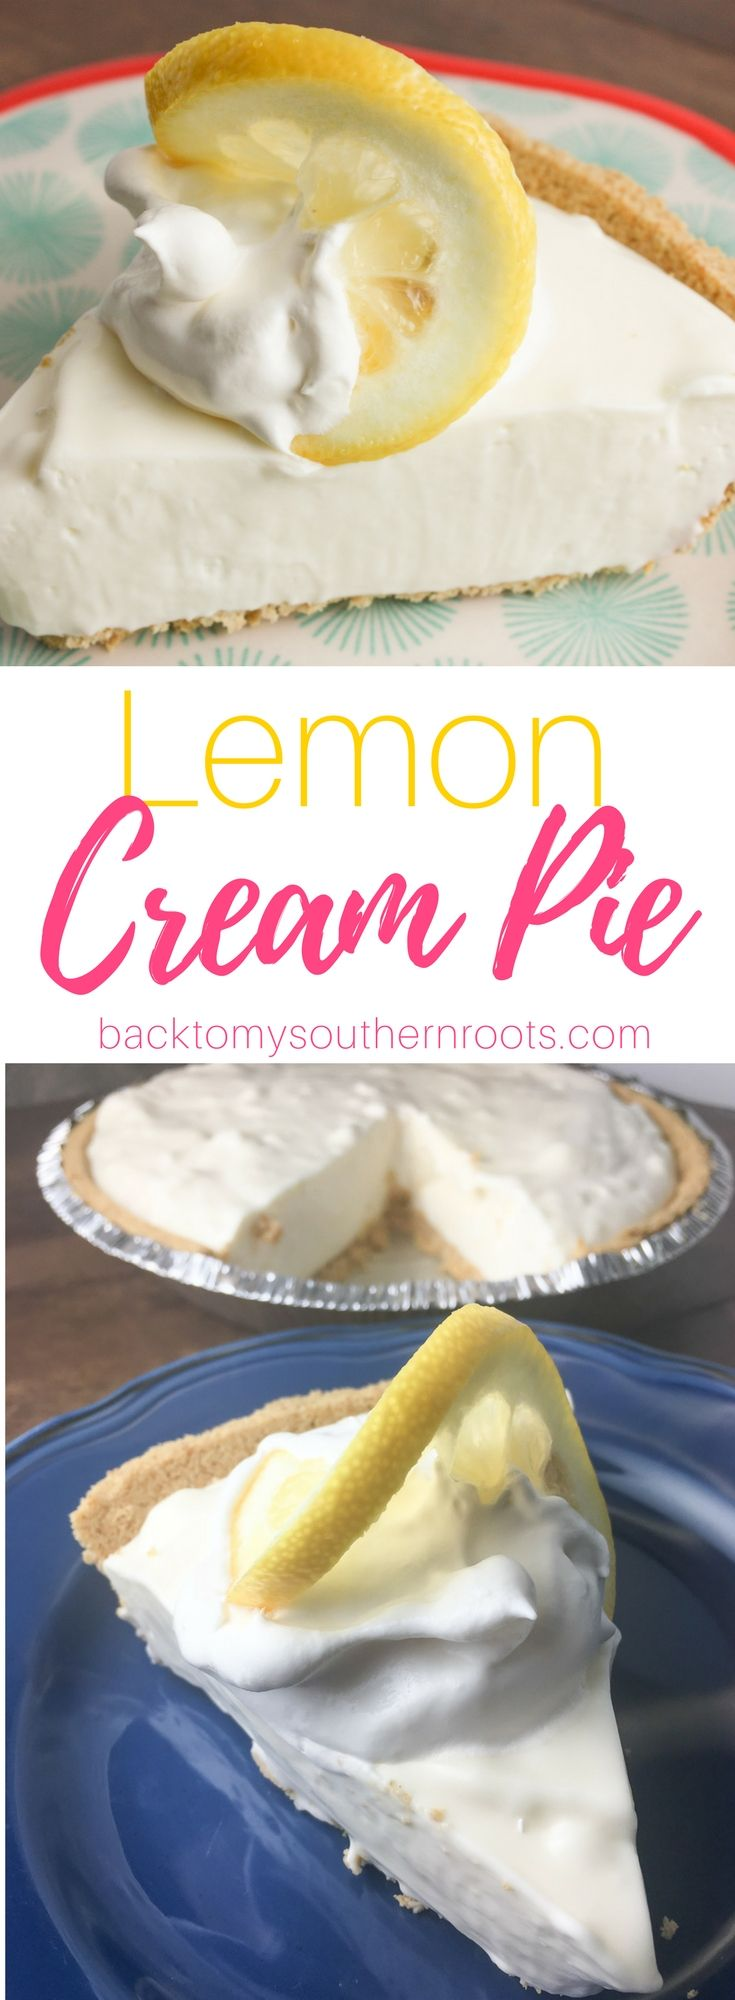 43 best Bakeware Recipes images on Pinterest | Bakeware, Pie recipes ...